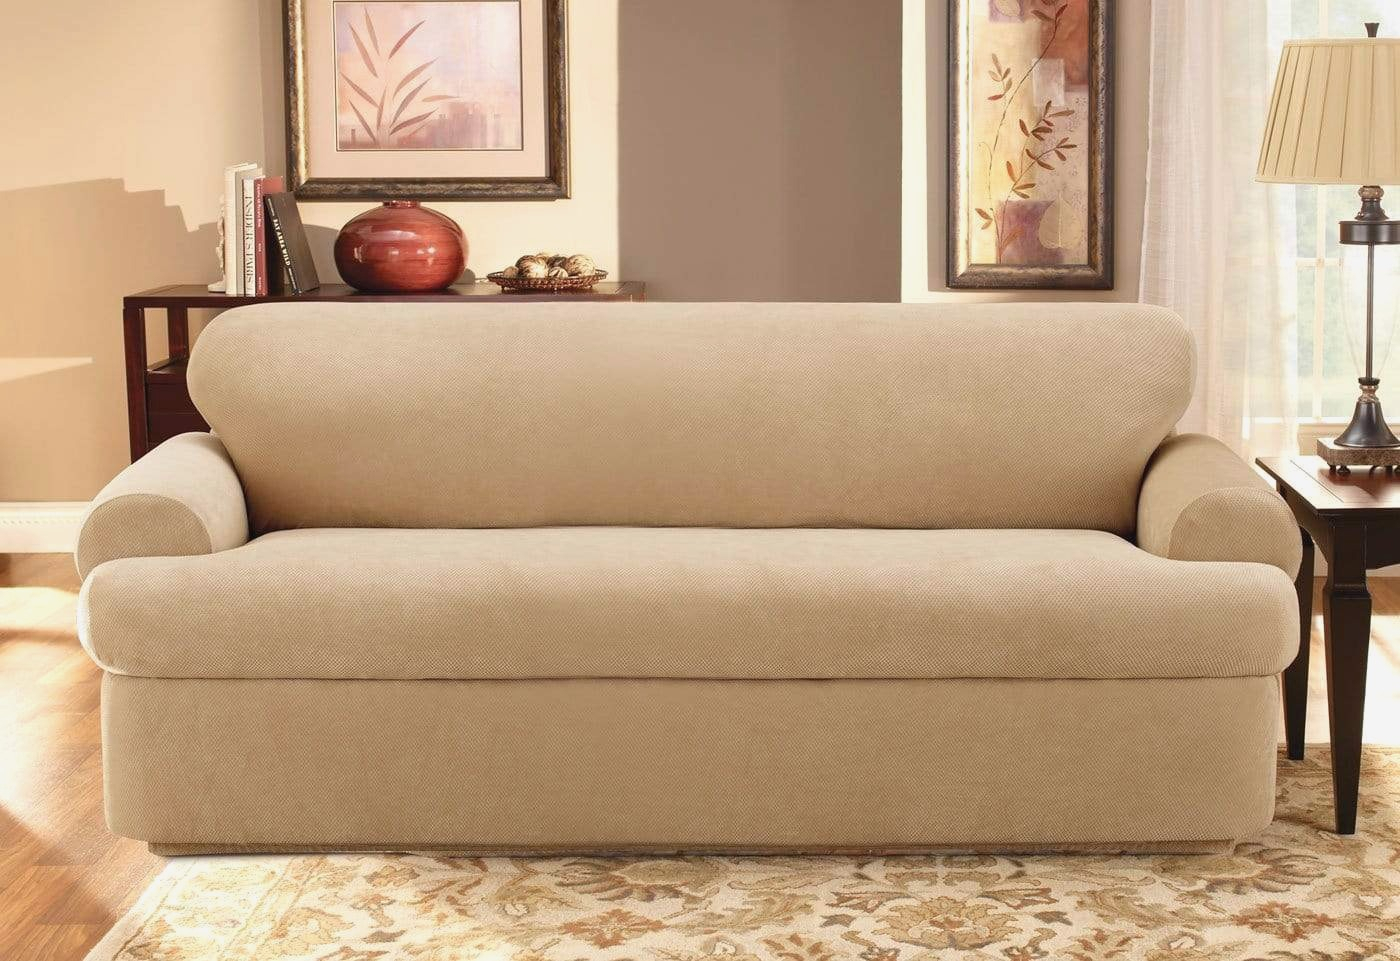 Stretch Pique Three Piece Full Size Sleeper Sofa Slipcover Intended For 3 Piece Sectional Sofa Slipcovers (View 10 of 15)